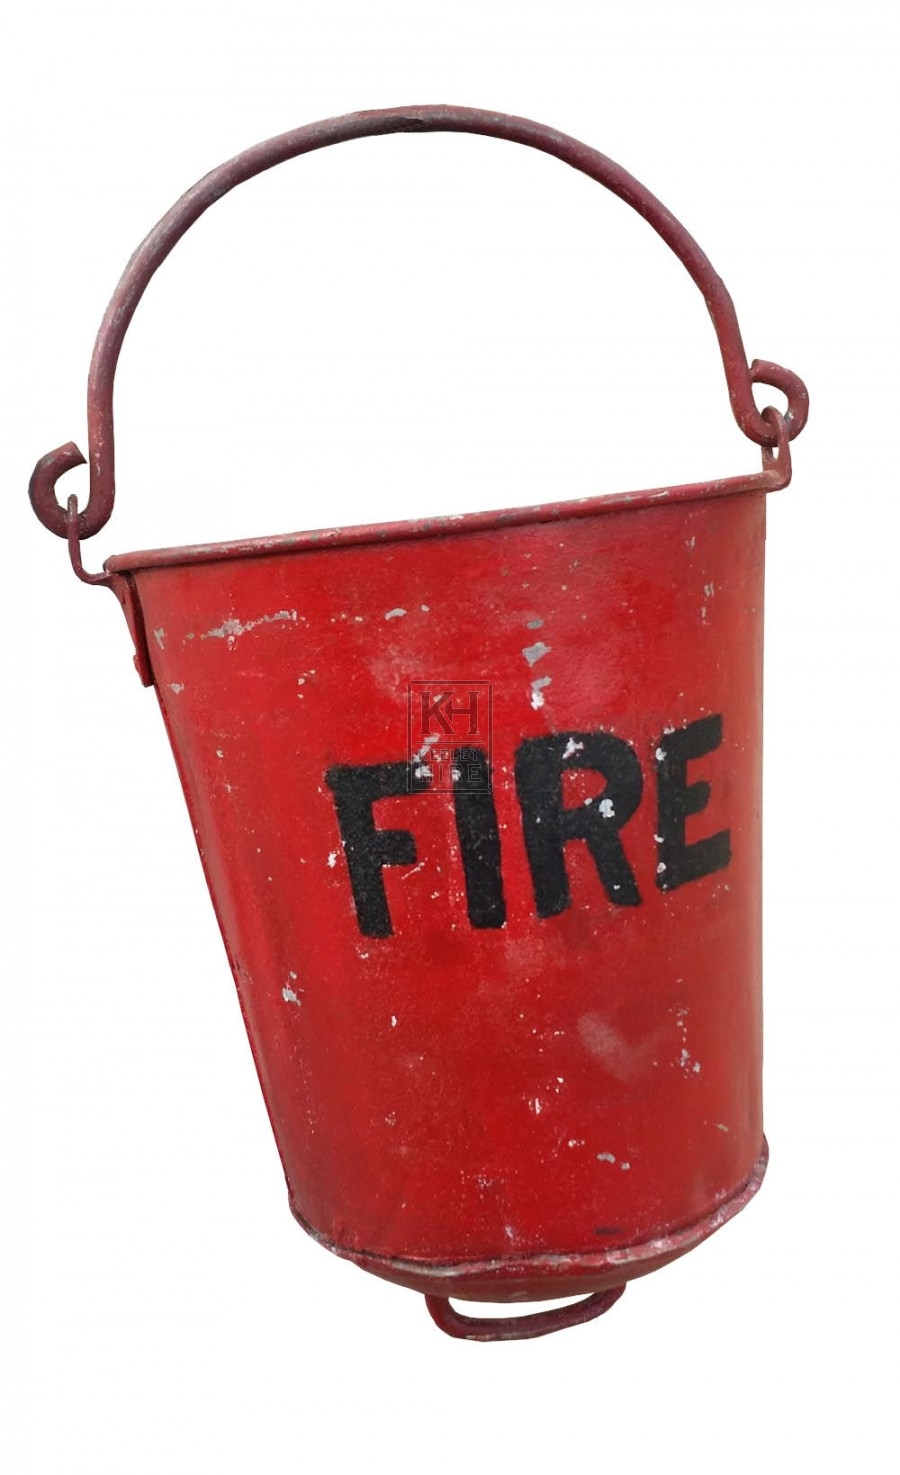 Period Industrial red fire bucket